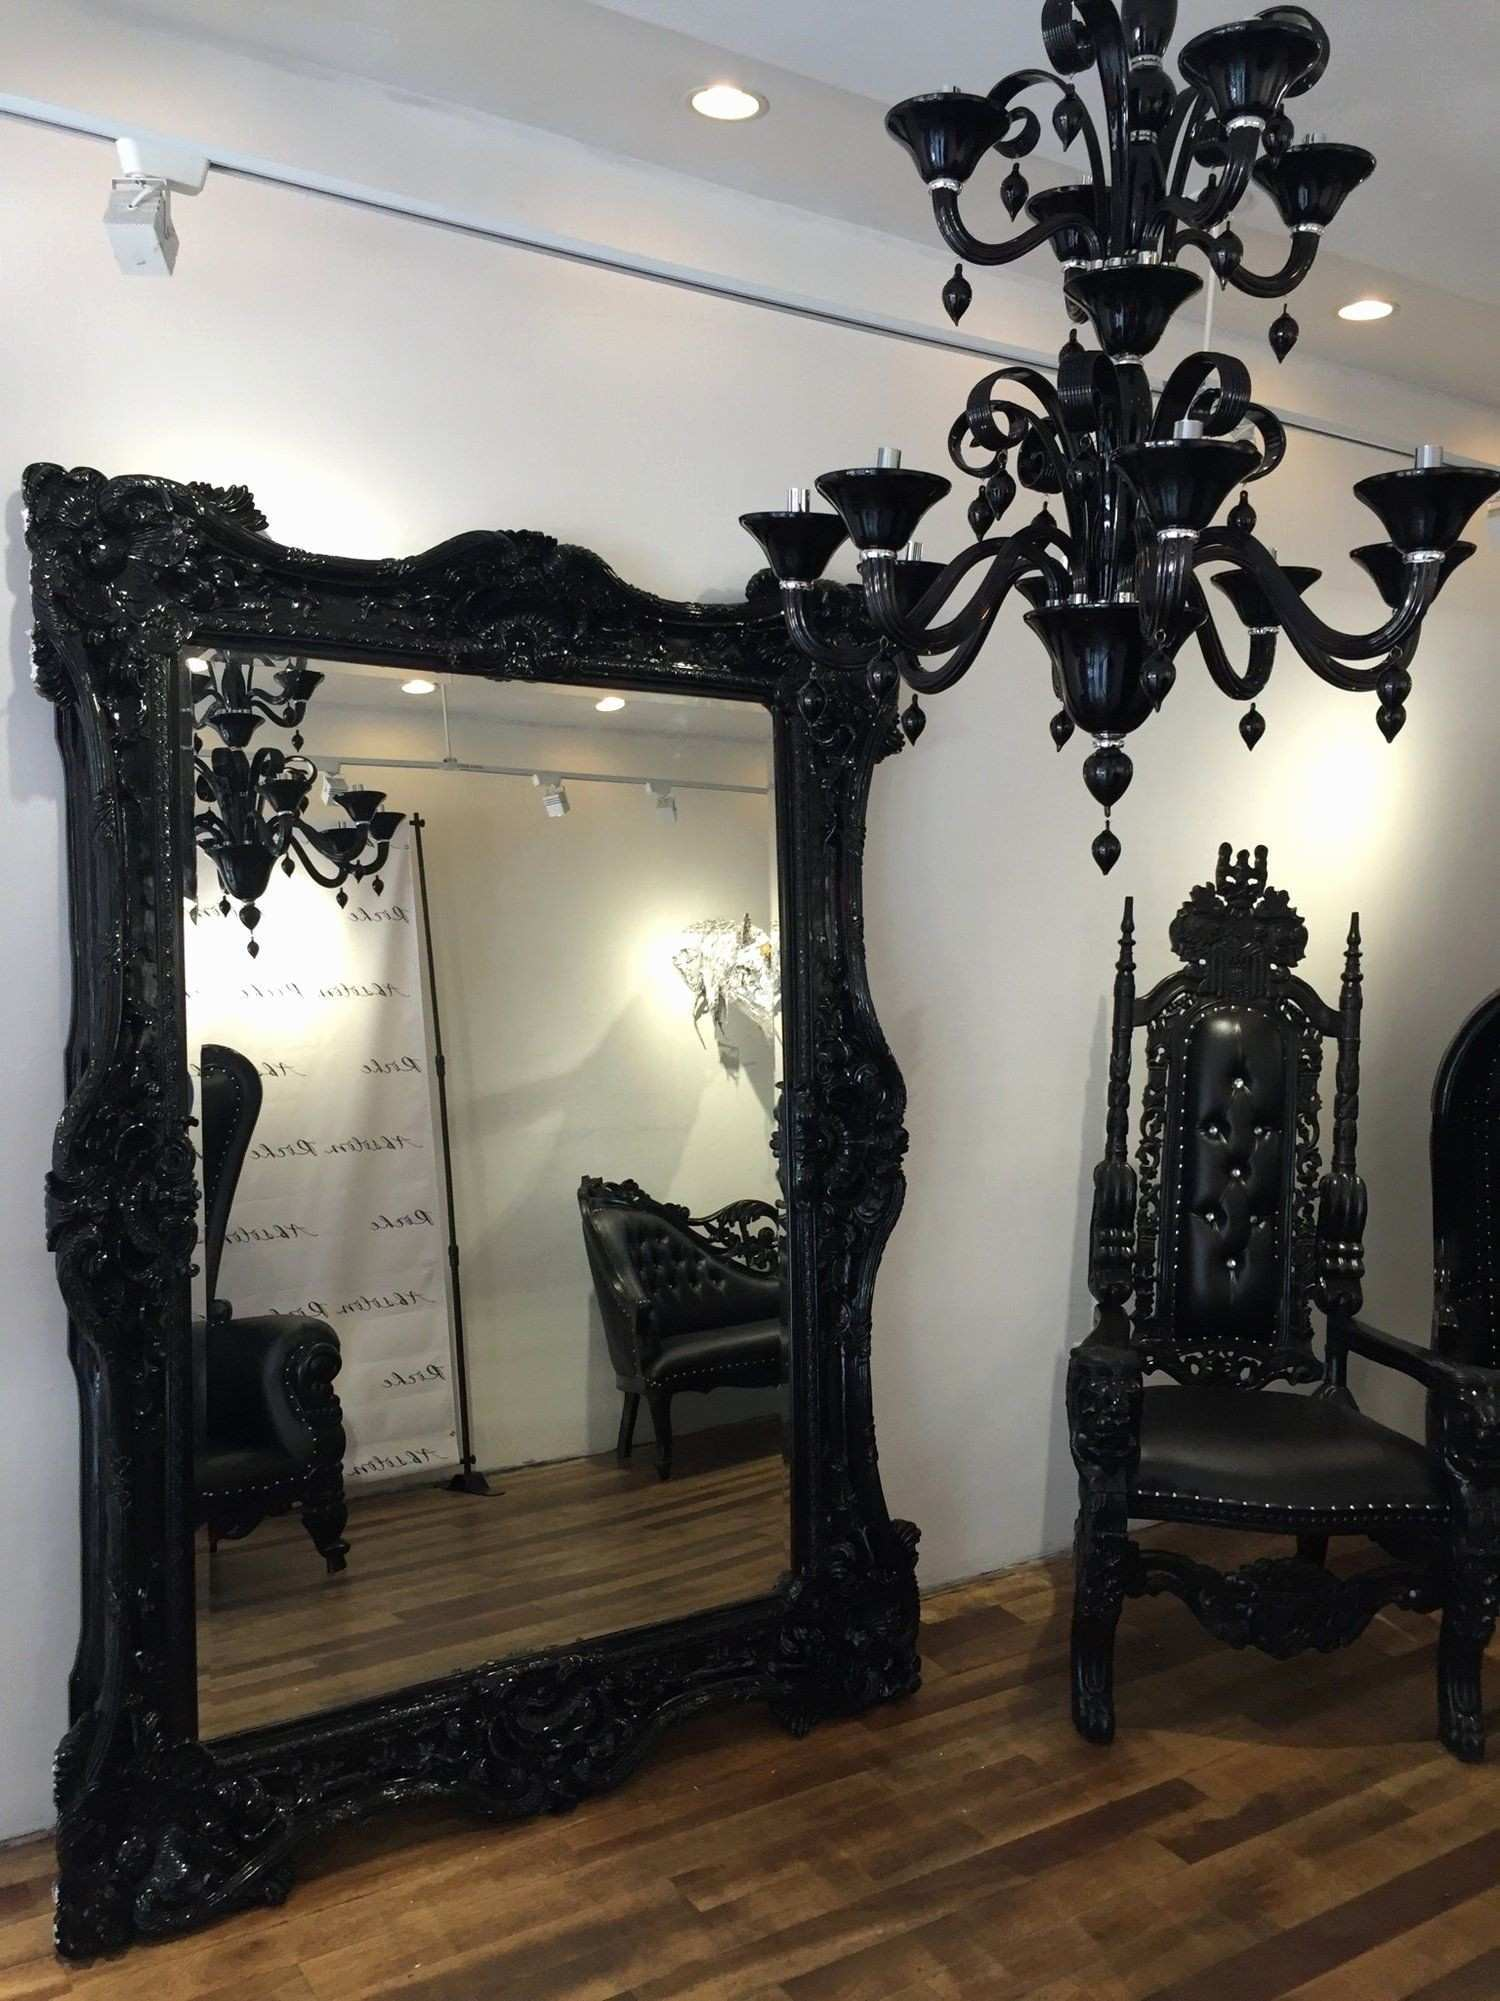 Mirror Wall Decor Ideas Fresh with Sunburst Mirrors Staying In the